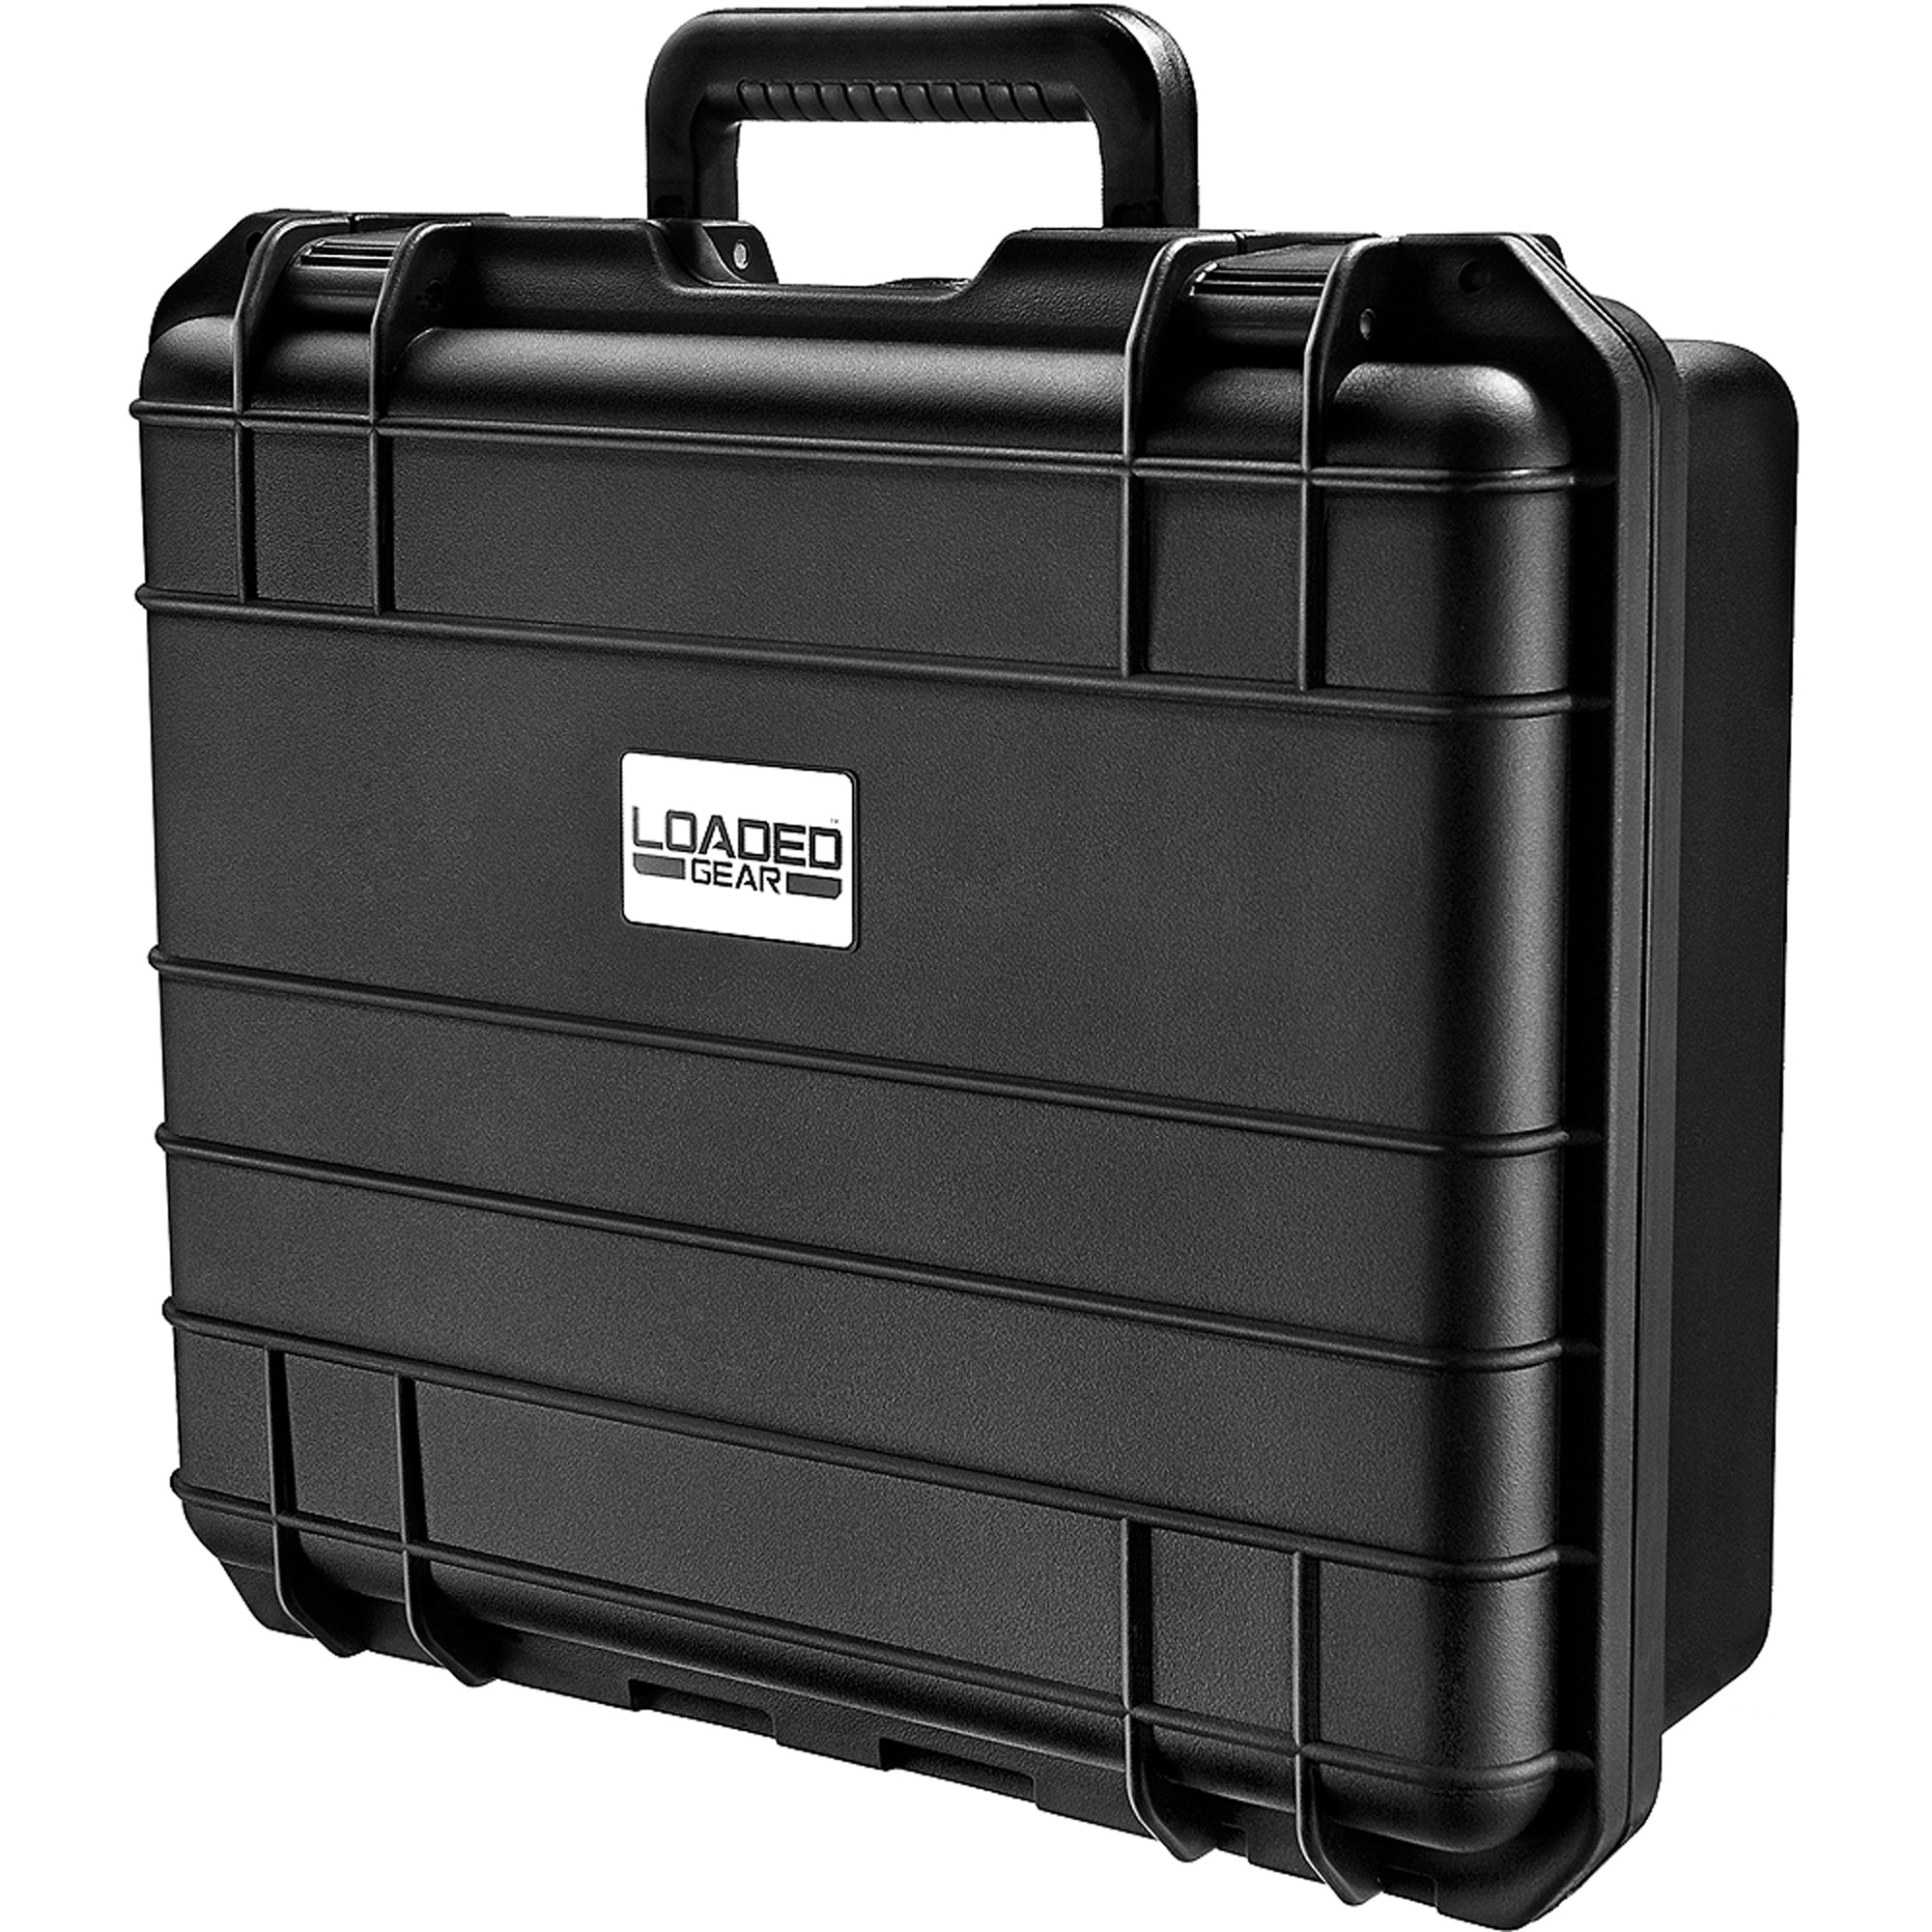 Barska Optics Loaded Gear Hard Case, HD-300, Black Strap